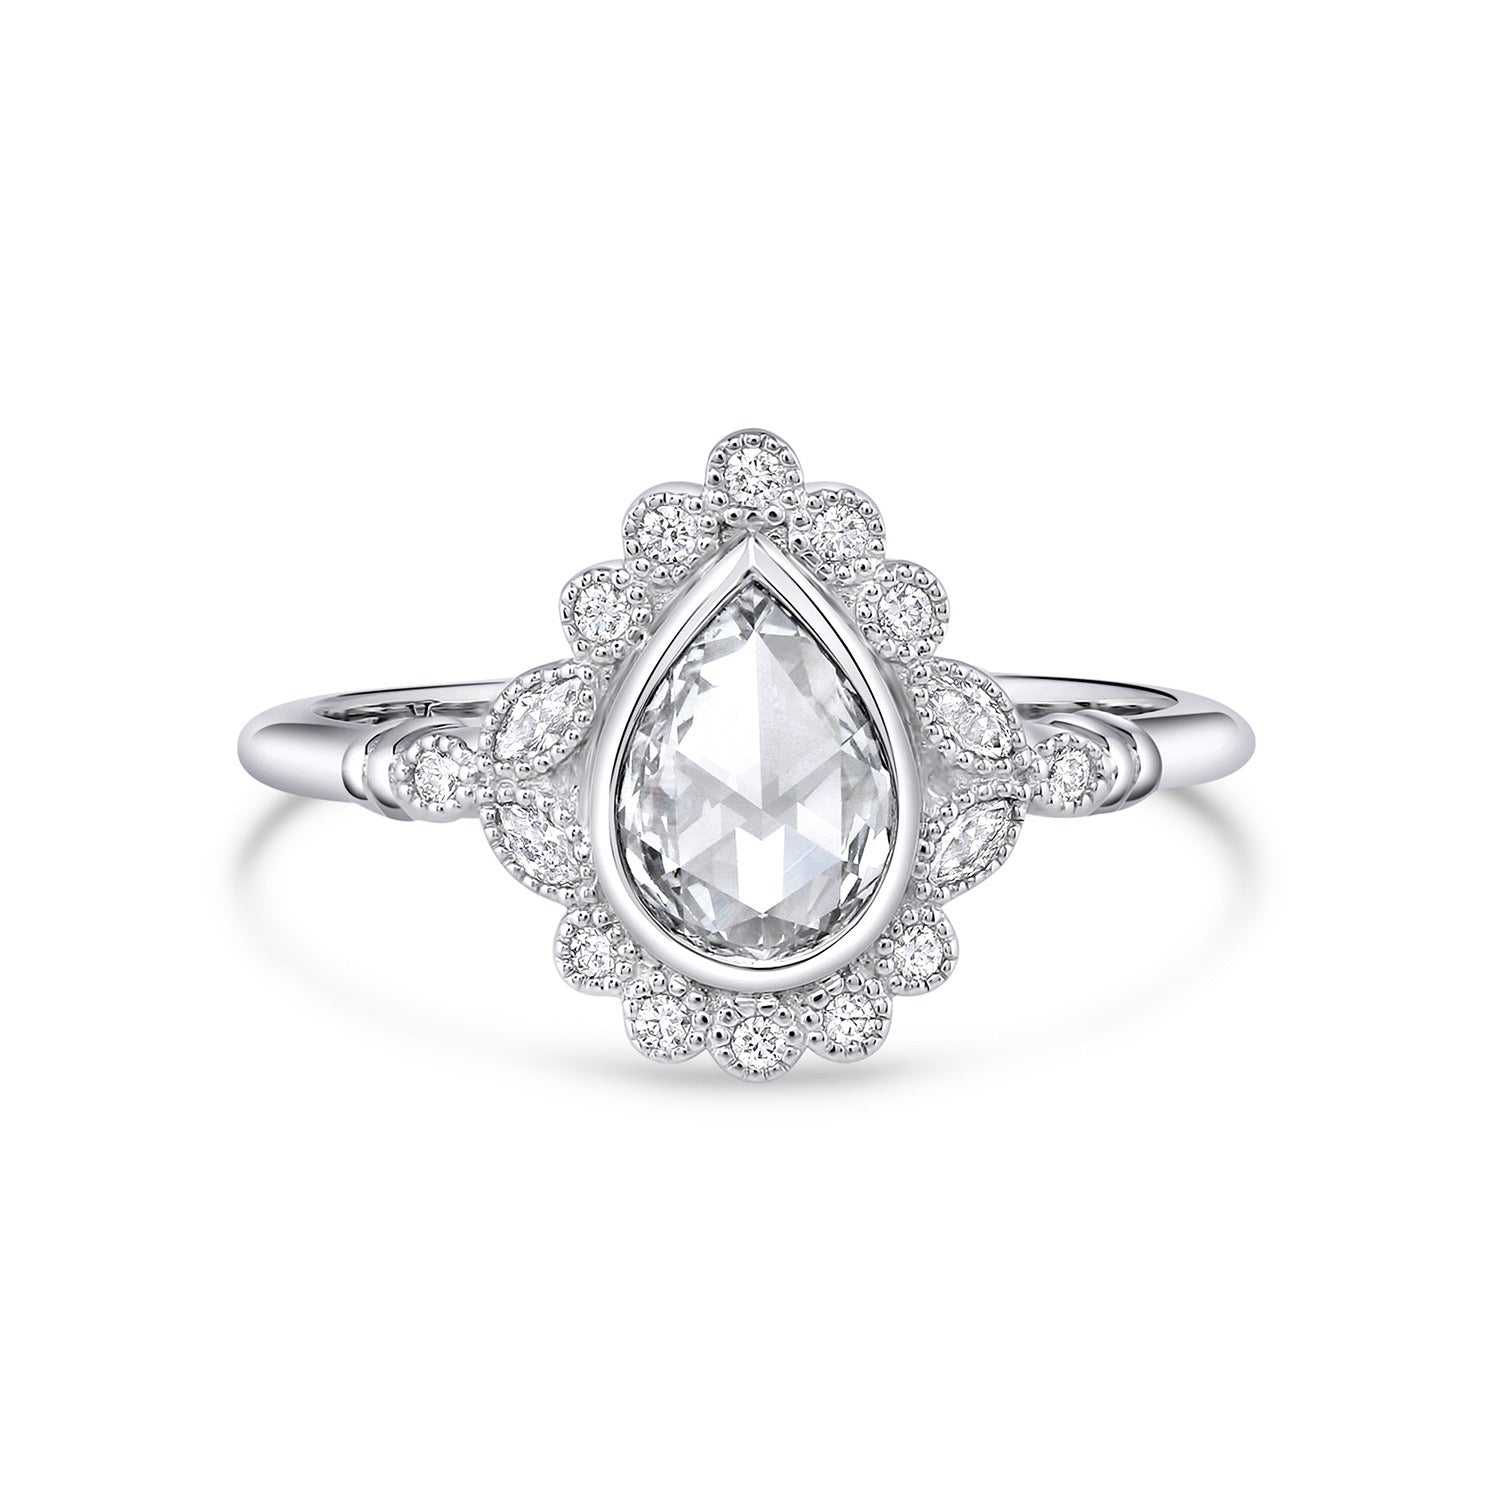 Everly | Pear Rose Cut Moissanite Milgrain Bezel Engagement Ring | Palladium White Gold - Platinum